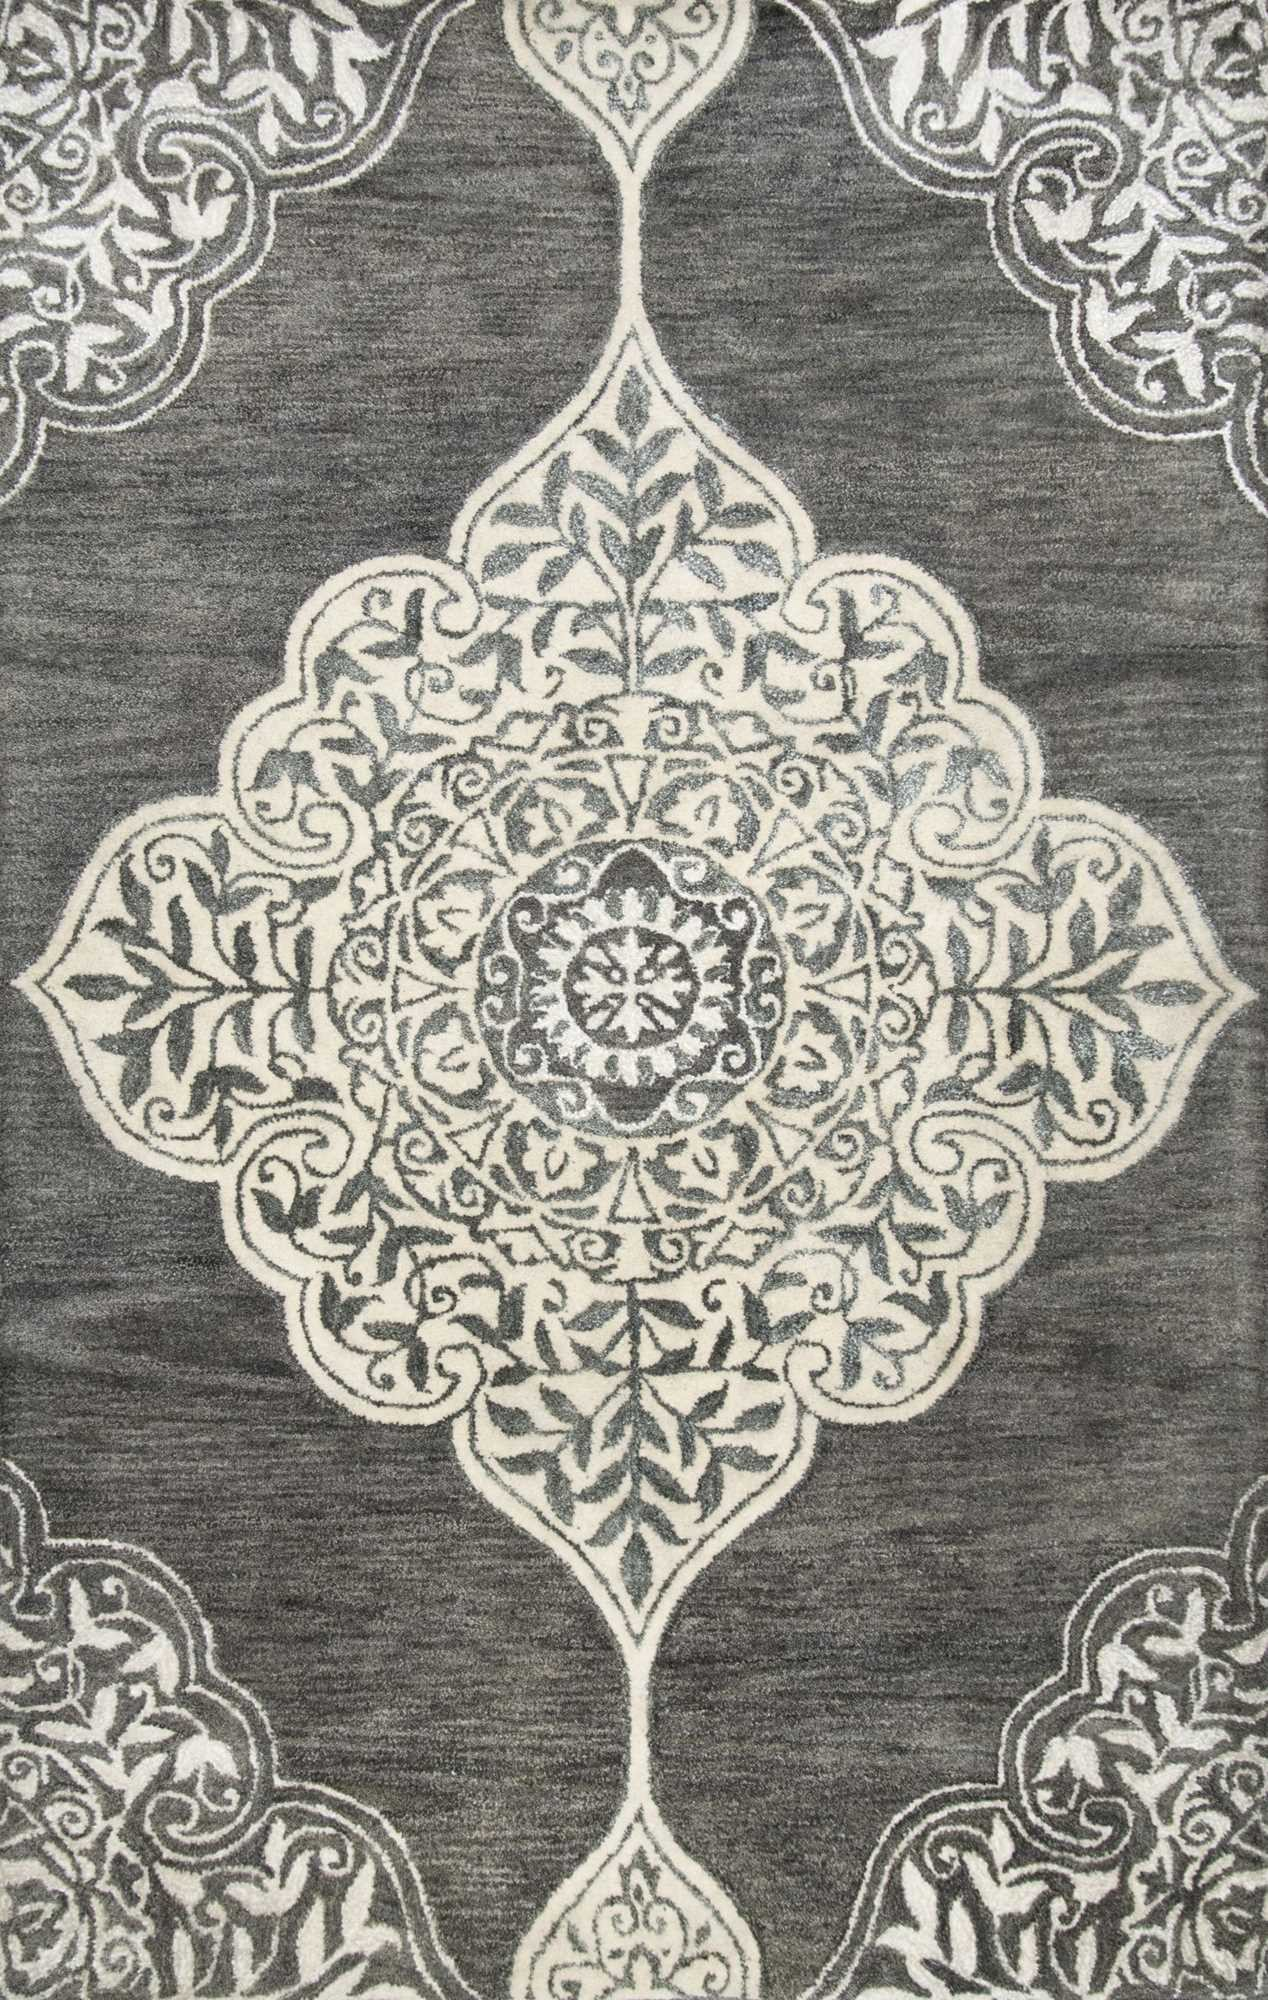 1000+ images about Wallpapers on Pinterest | Watercolour, Mandalas and iPhone  wallpapers